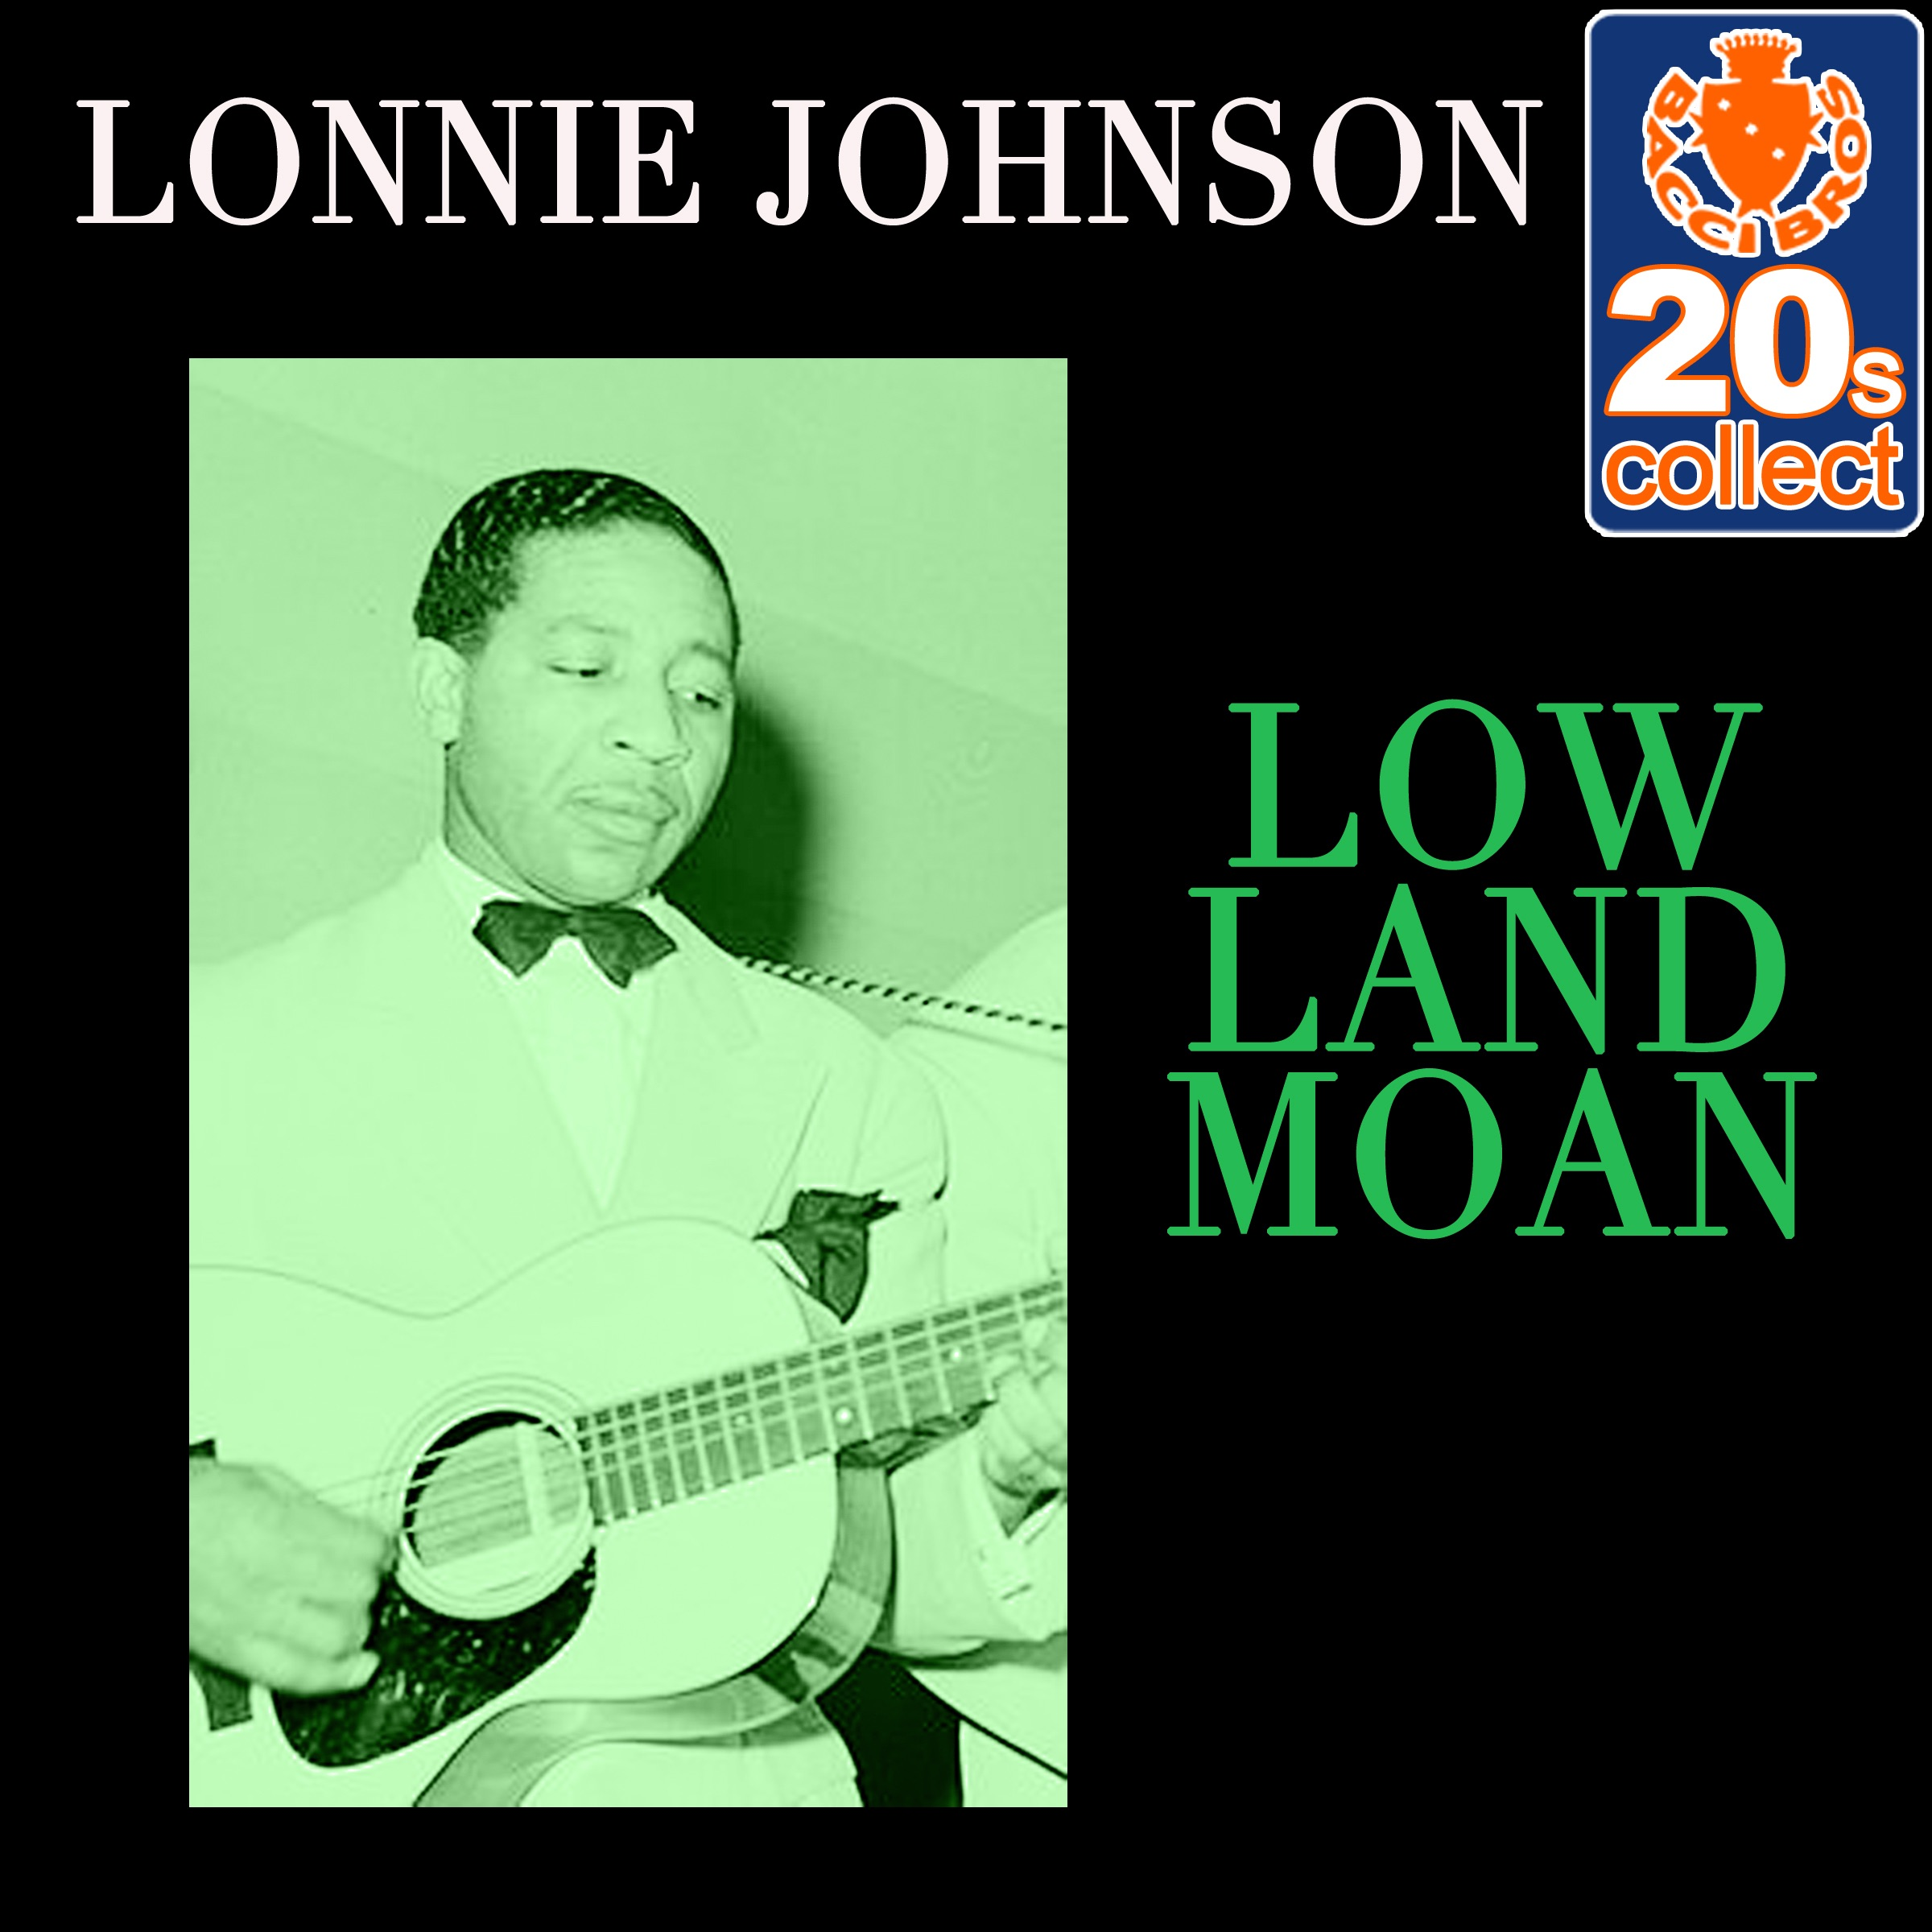 Low Land Moan (Remastered) - Single